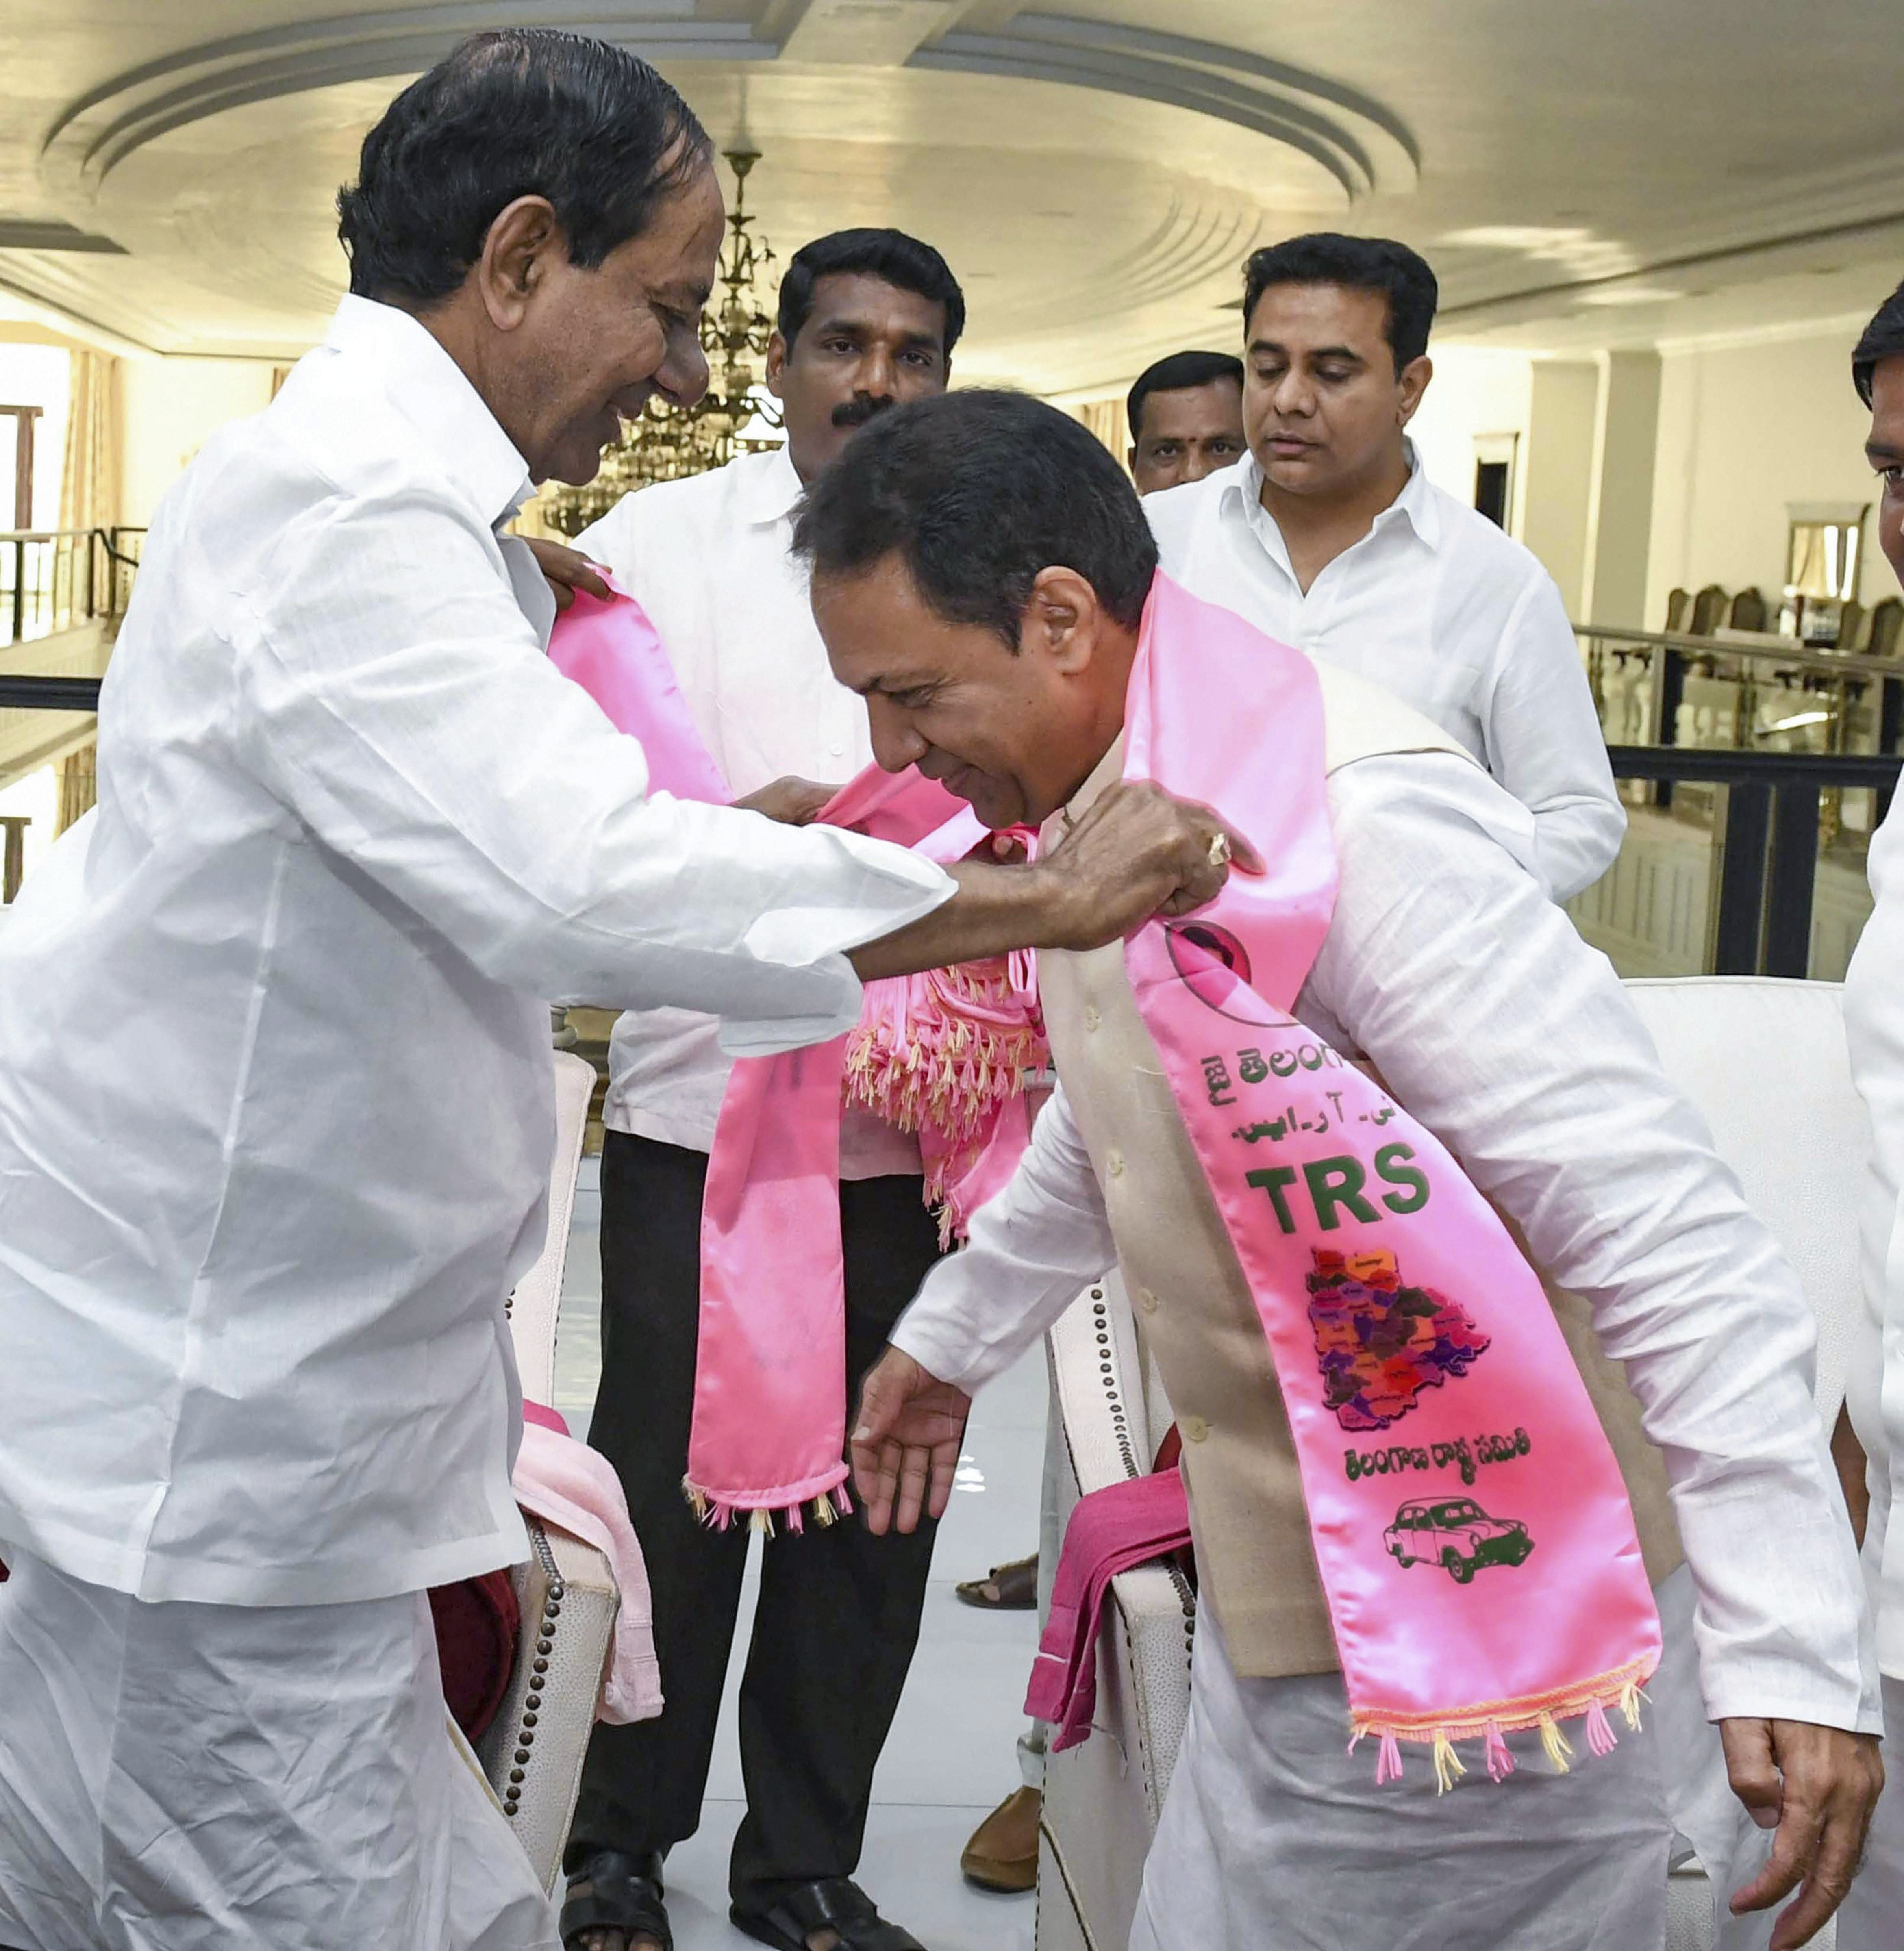 Senior Congress leader Suresh Reddy being welcomed as he joins Telangana Rashtra Samithi (TRS) by party chief K Chandra Shekhar Rao, in Hyderabad - PTI